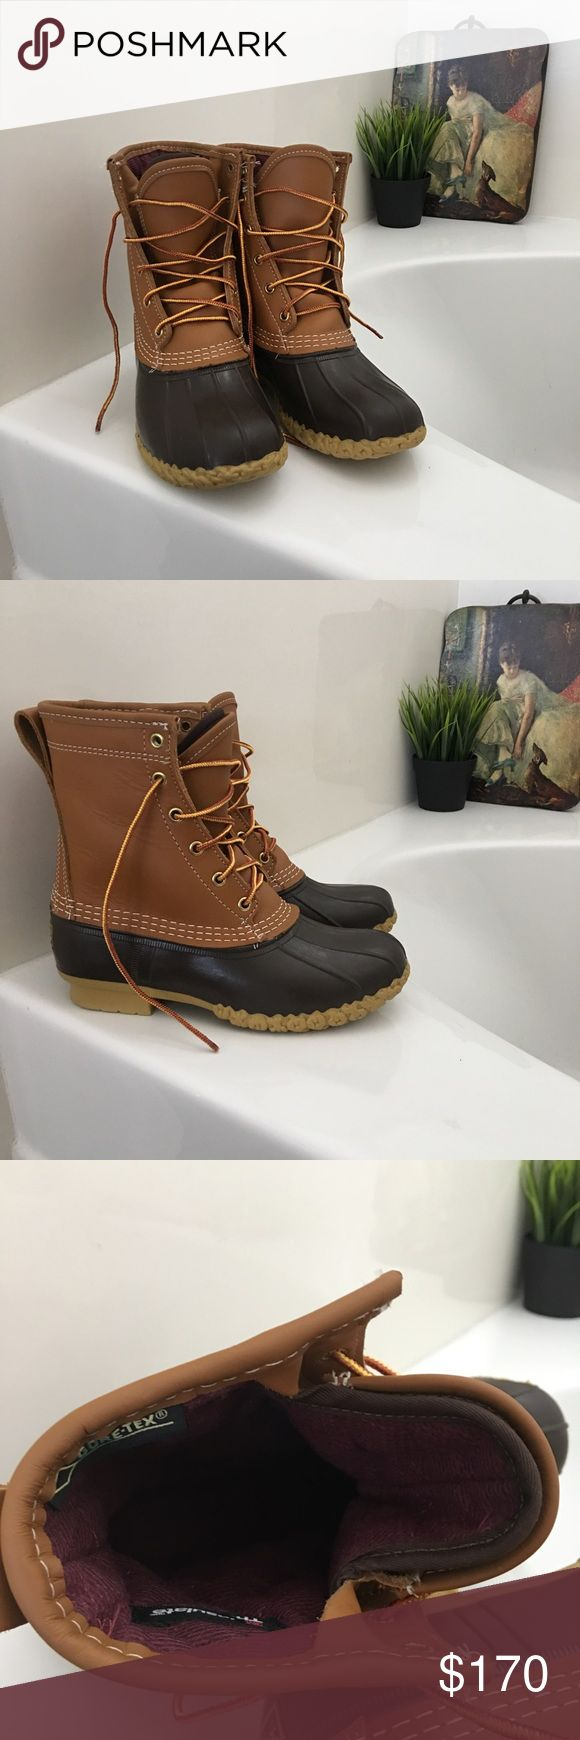 1000 Ideas About Thinsulate Boots On Pinterest Men S